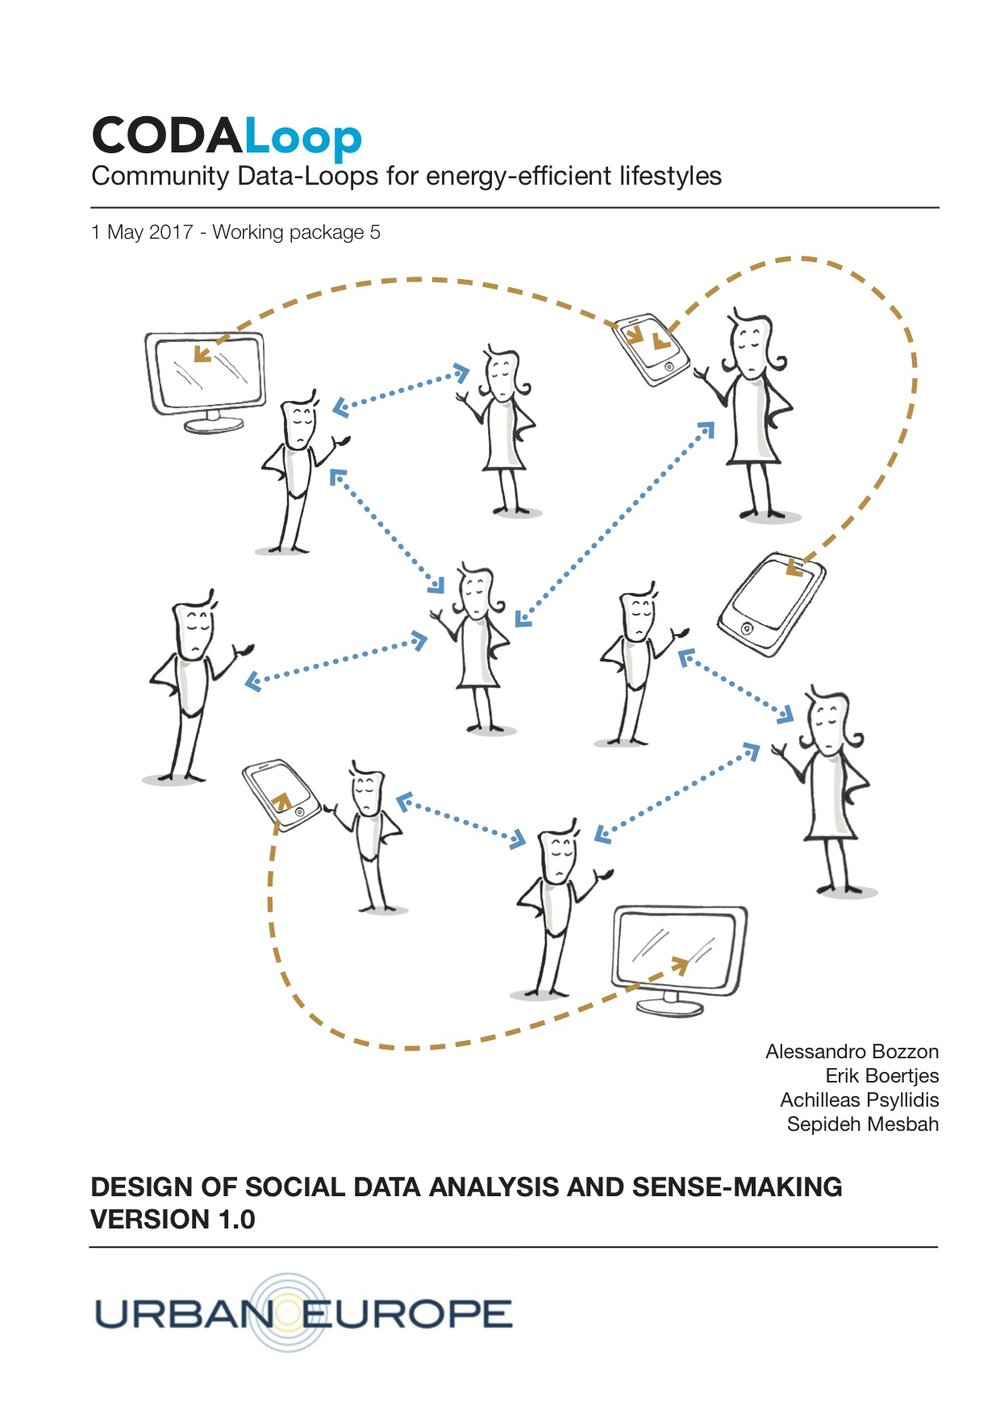 Working package 5 - Design of social data collection, integration, analysis and sense-making (leader TU Delft)This WP aims at designing models of data gathering and integration from sensors, social networks, social statistics and existent energy data-sources. These models will be employed across the two main WPs (2 and 3)